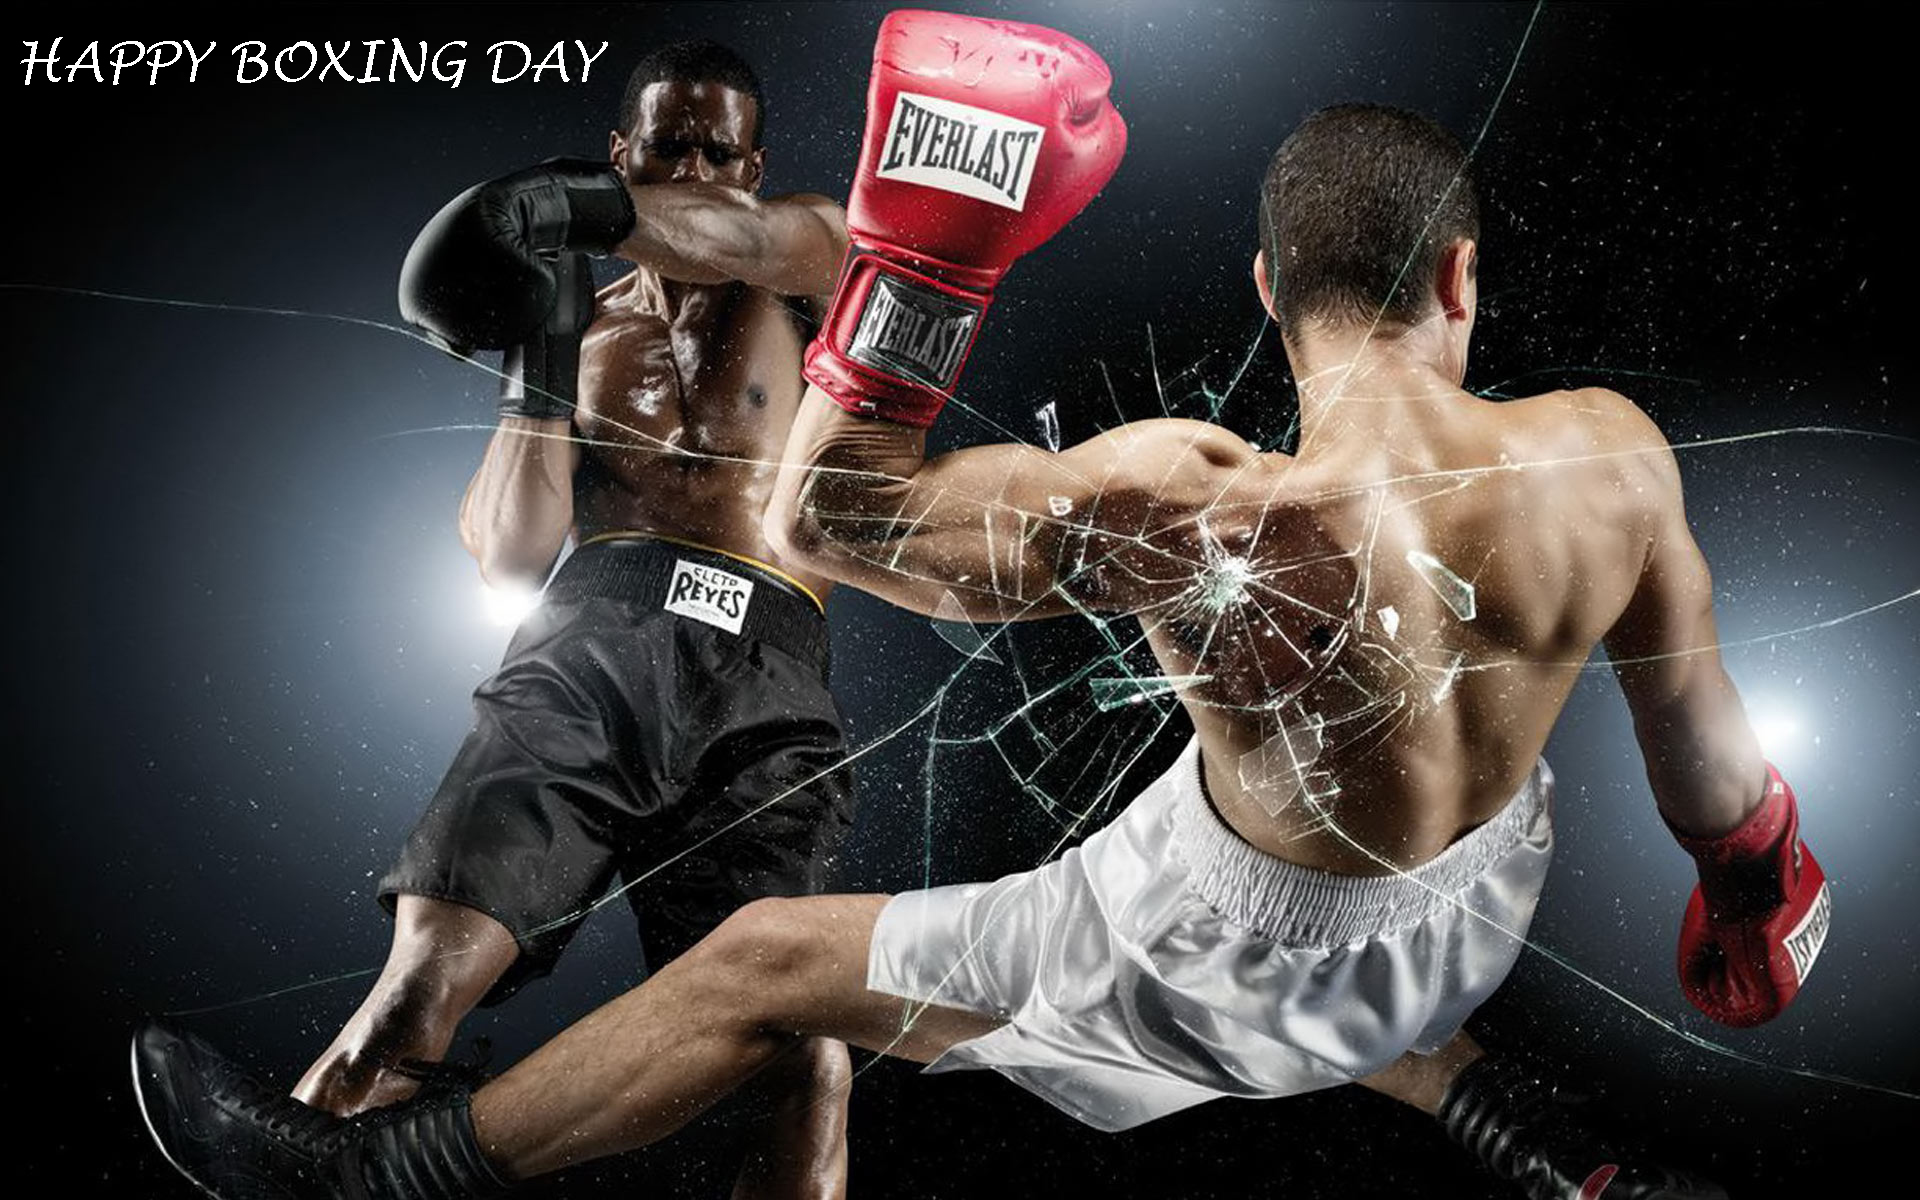 Awesome Happy Boxing Day Broken Screen Hd Wallpaper